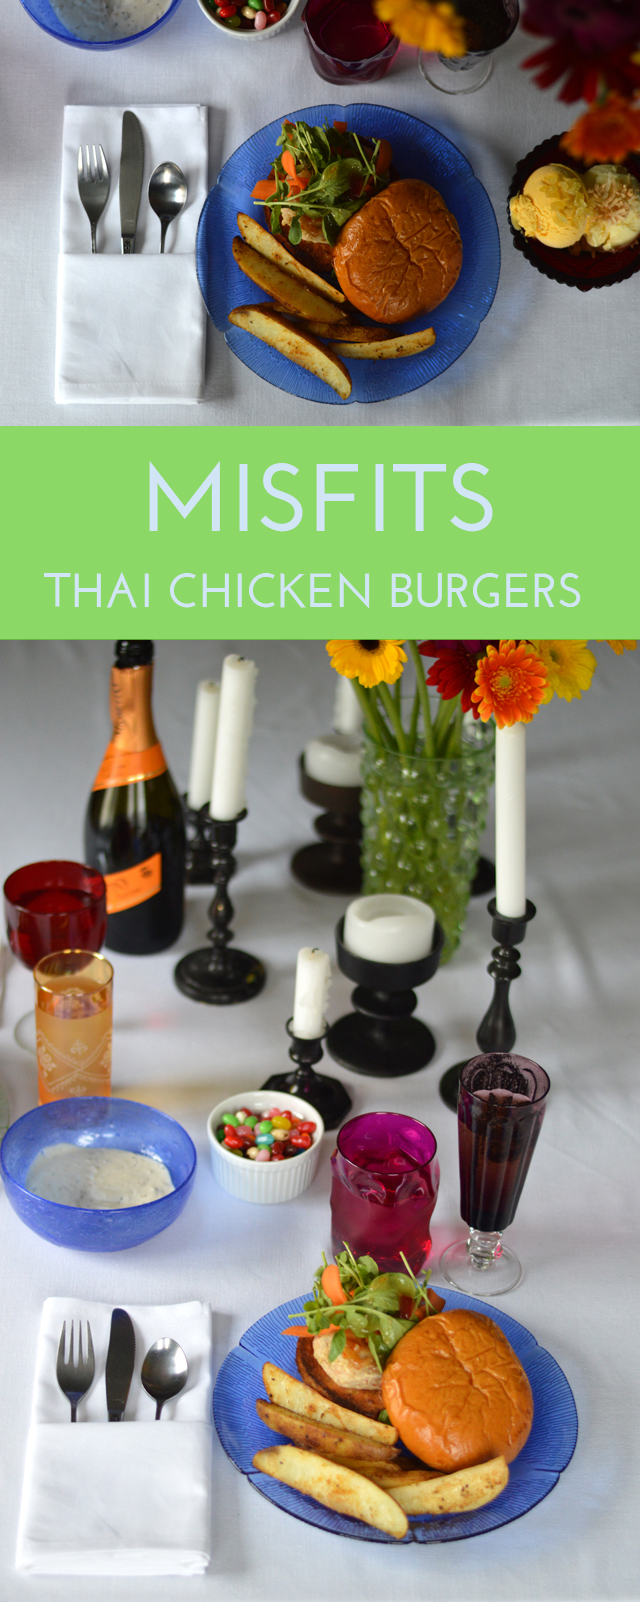 misfits-chicken-burgers-pinterest